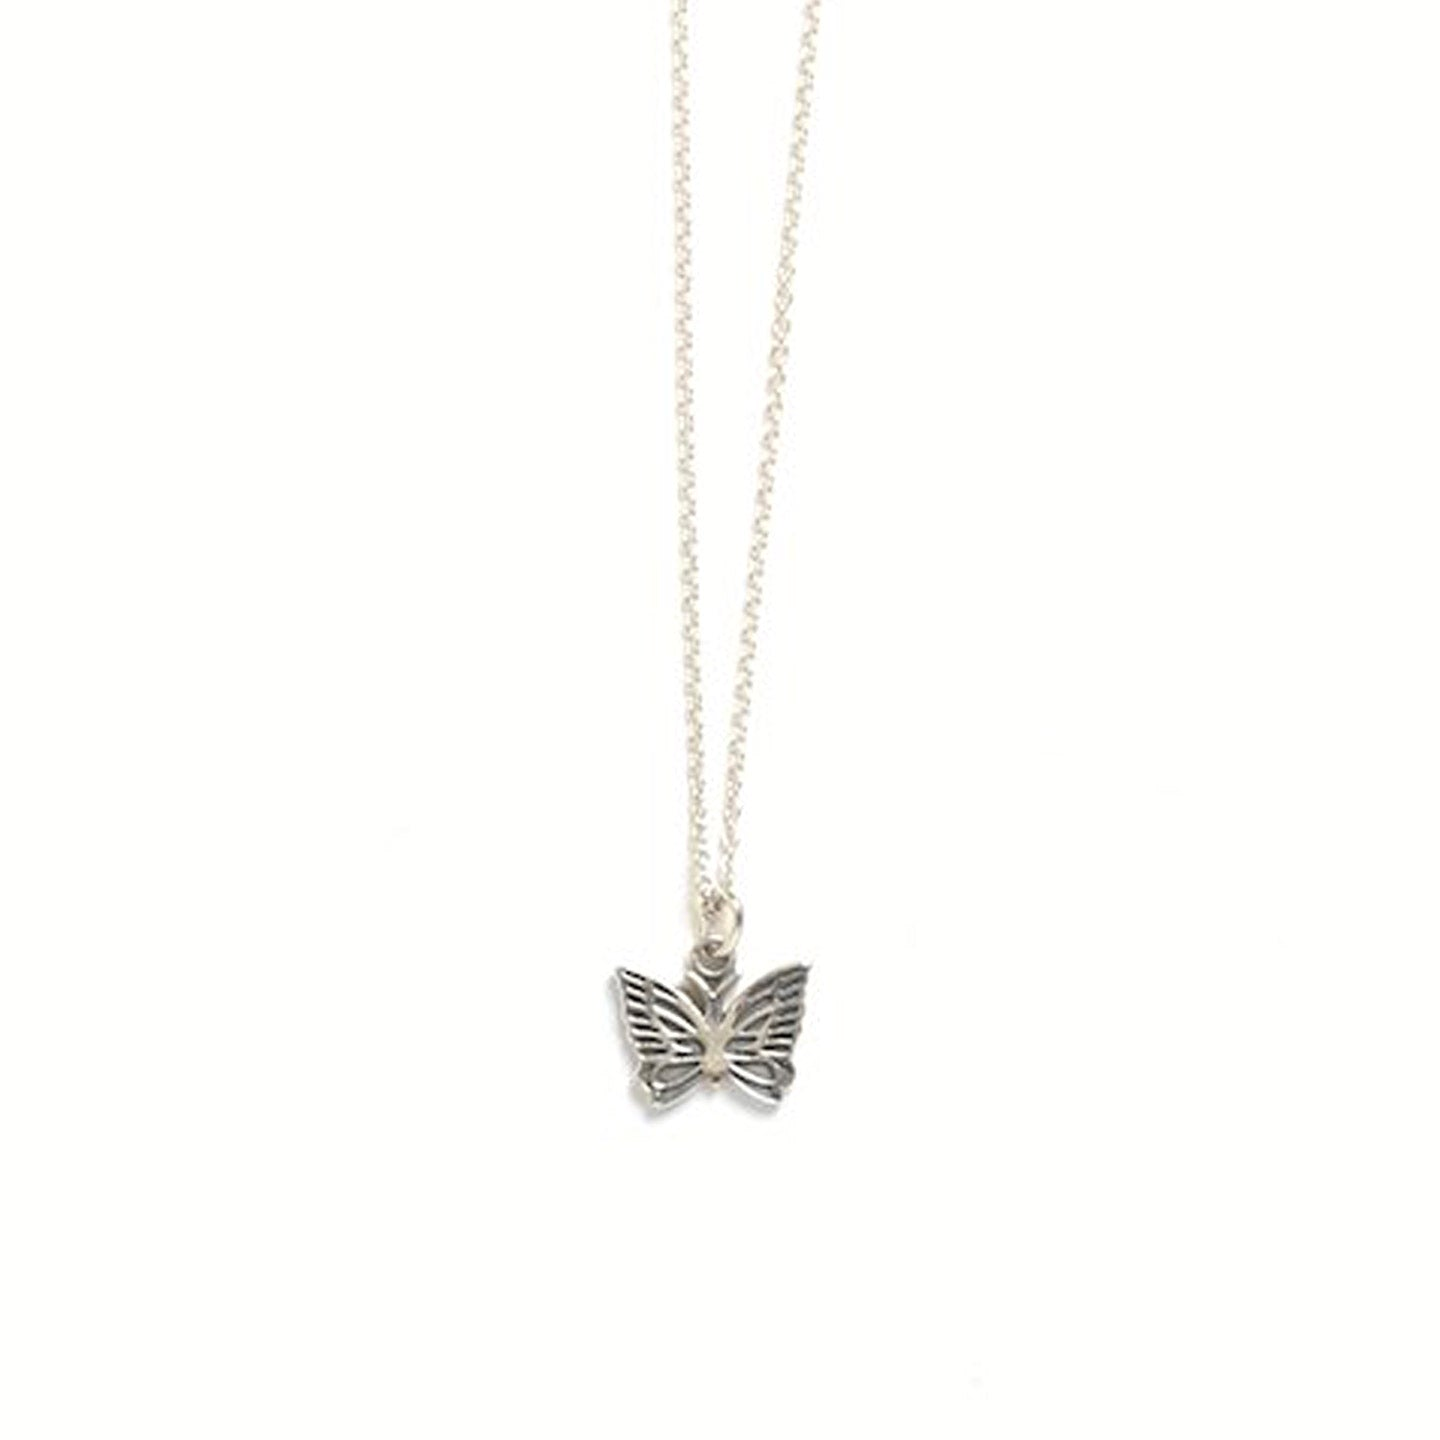 NEEDLES PAPILLON PENDANT SILVER 925